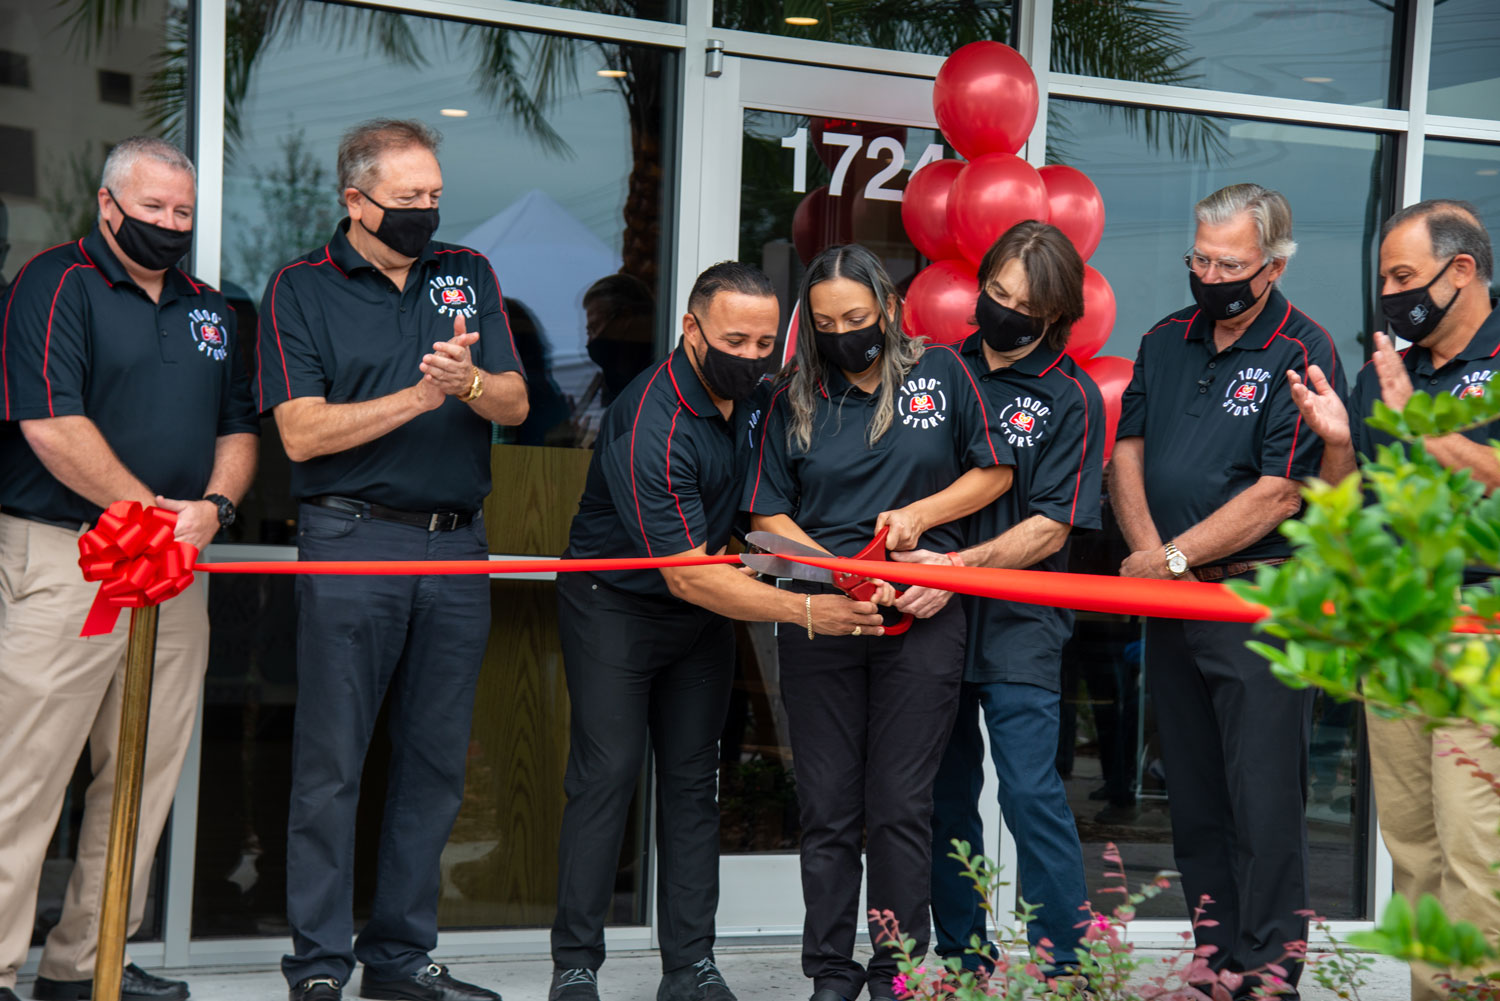 Cutting the ribbon at the grand opening of the 1000th Marco's Pizza location.